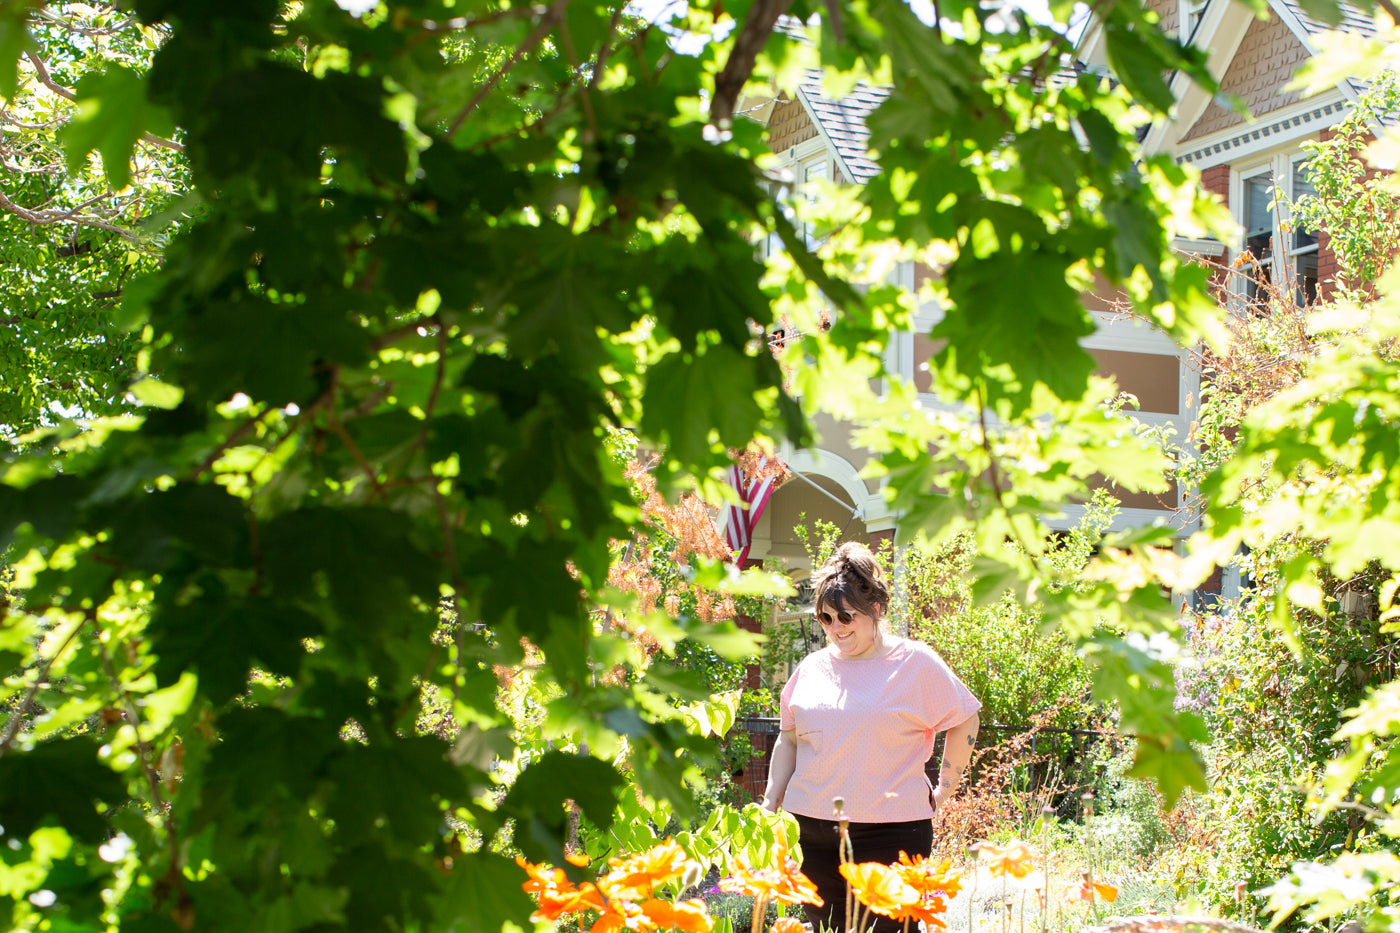 Marta wearing a light pink top, black jeans looking down at the big bright orange flowers blooming.  The photograph is taken looking through a green tree in the sunlight to Marta at a distance.  The tree is framing Marta in the photograph.